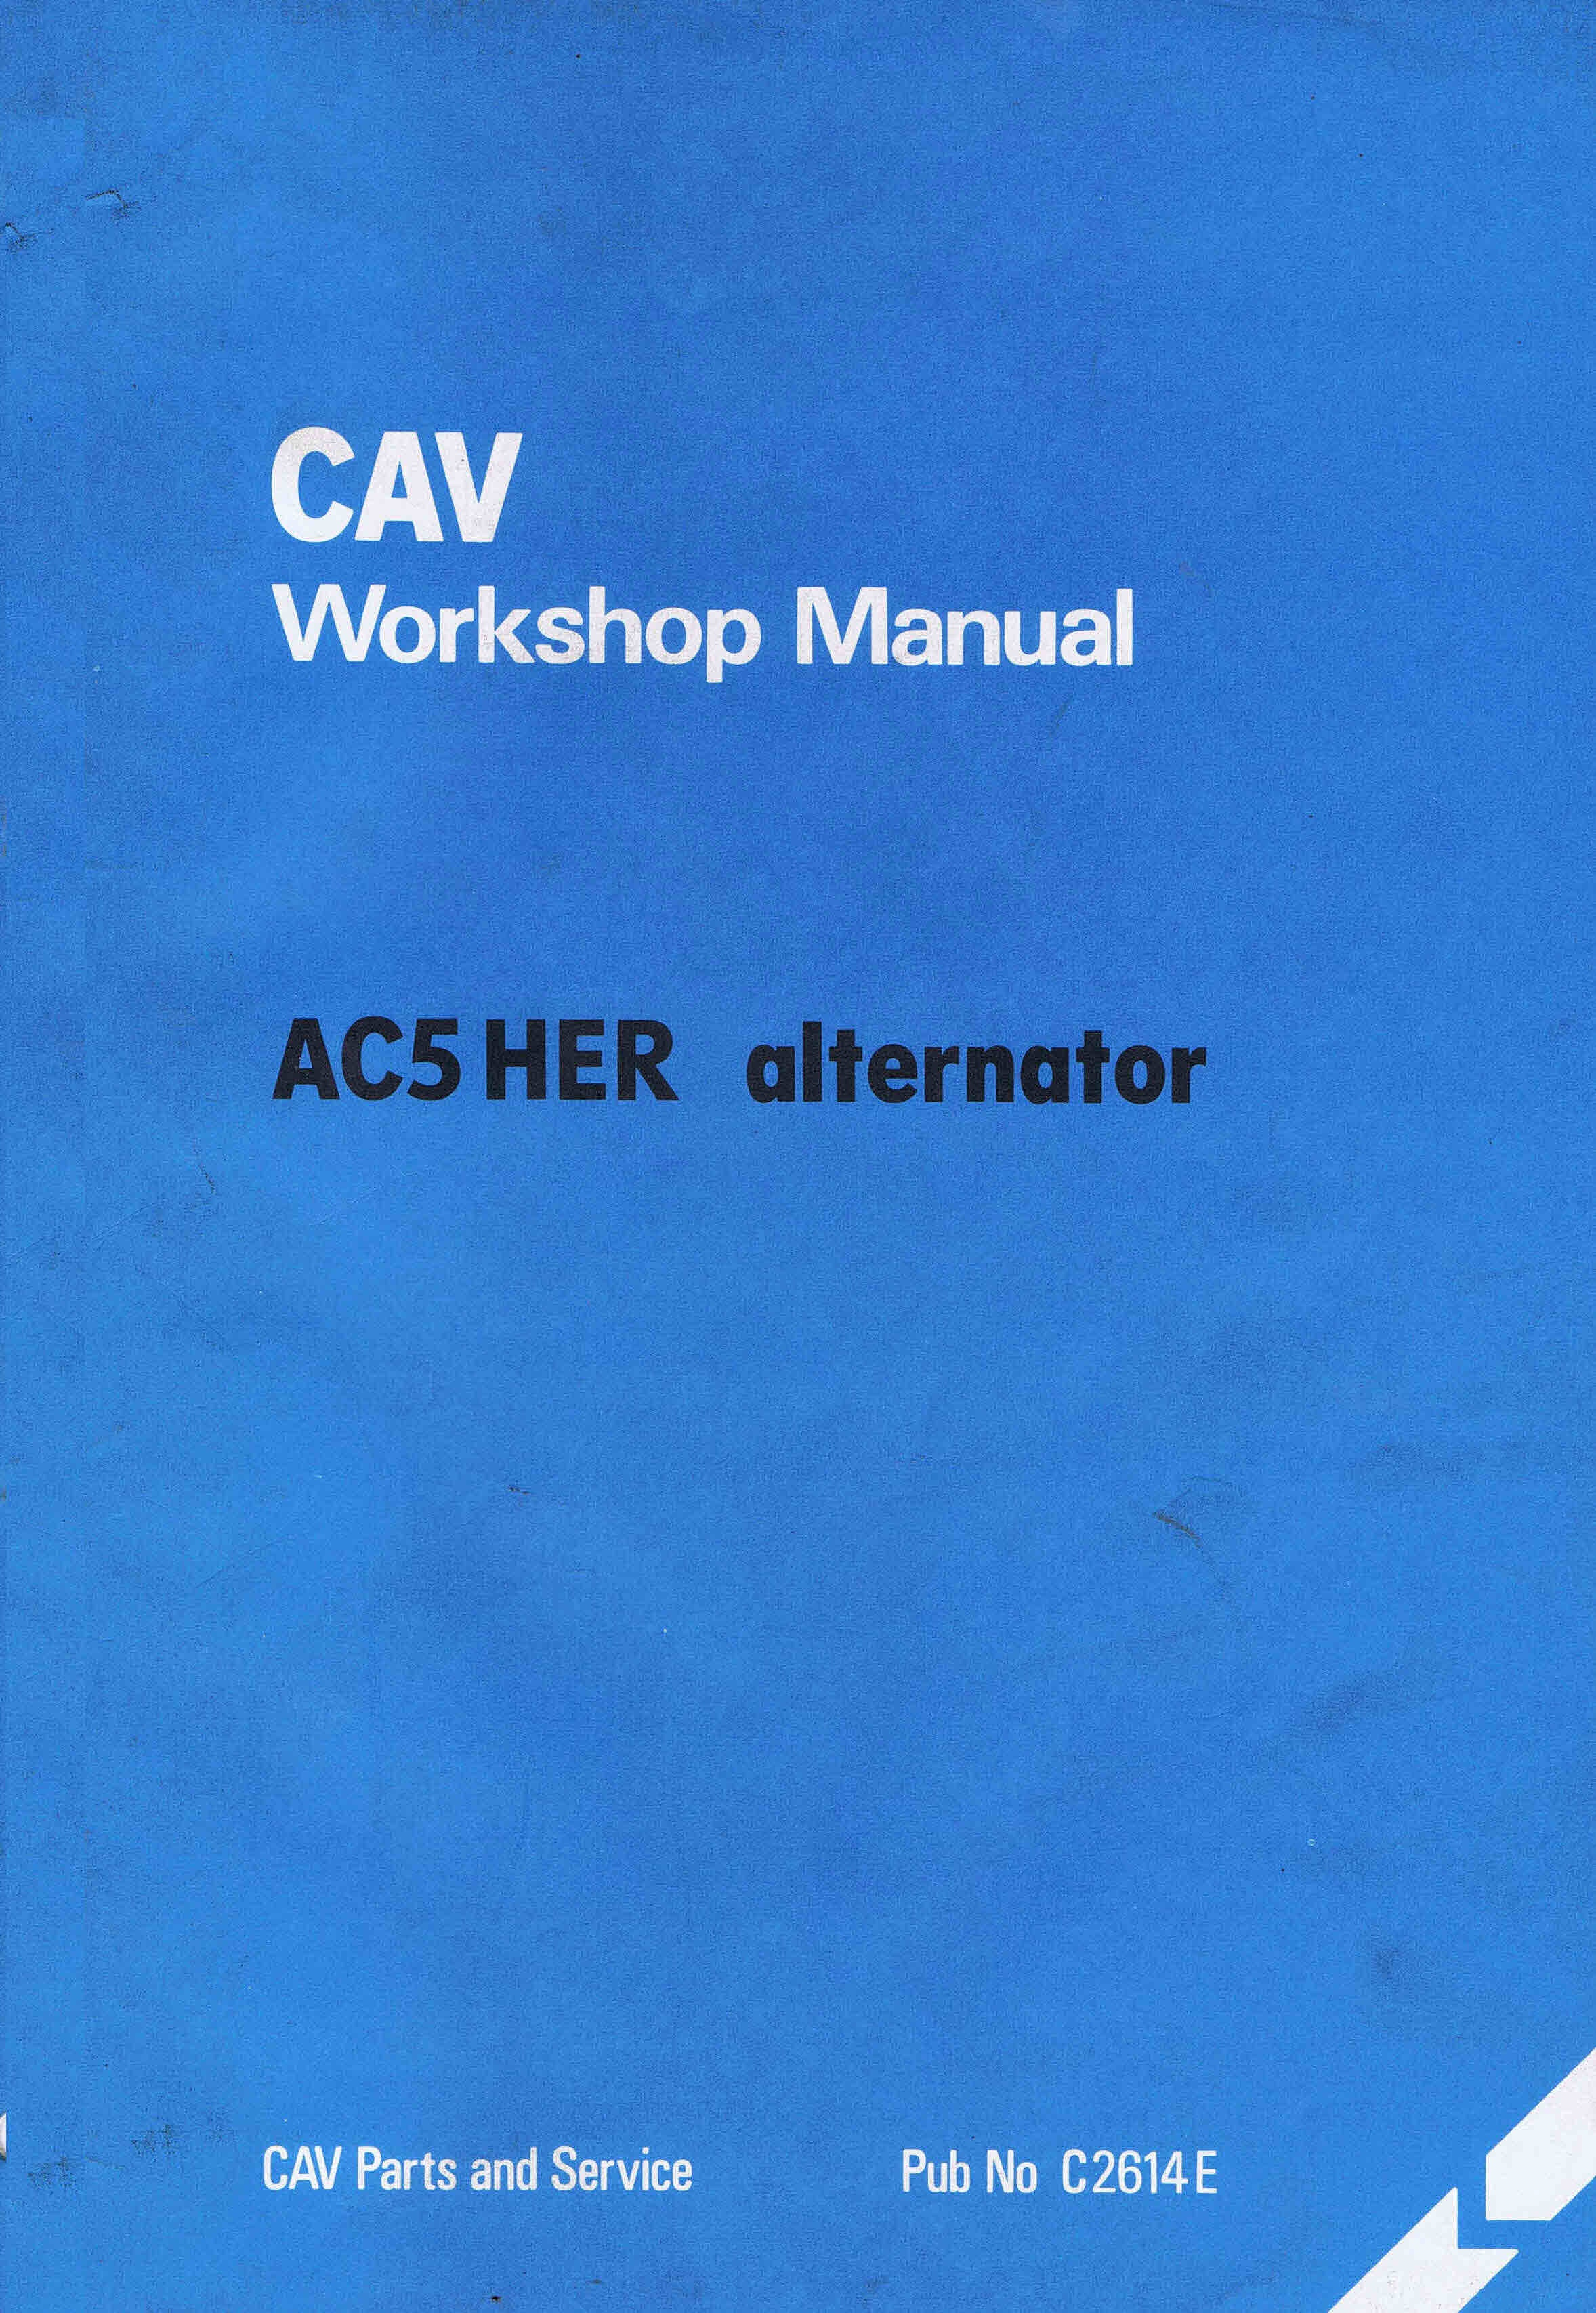 cav ac5 her alternator workshop manual themanualman rh sellfy com